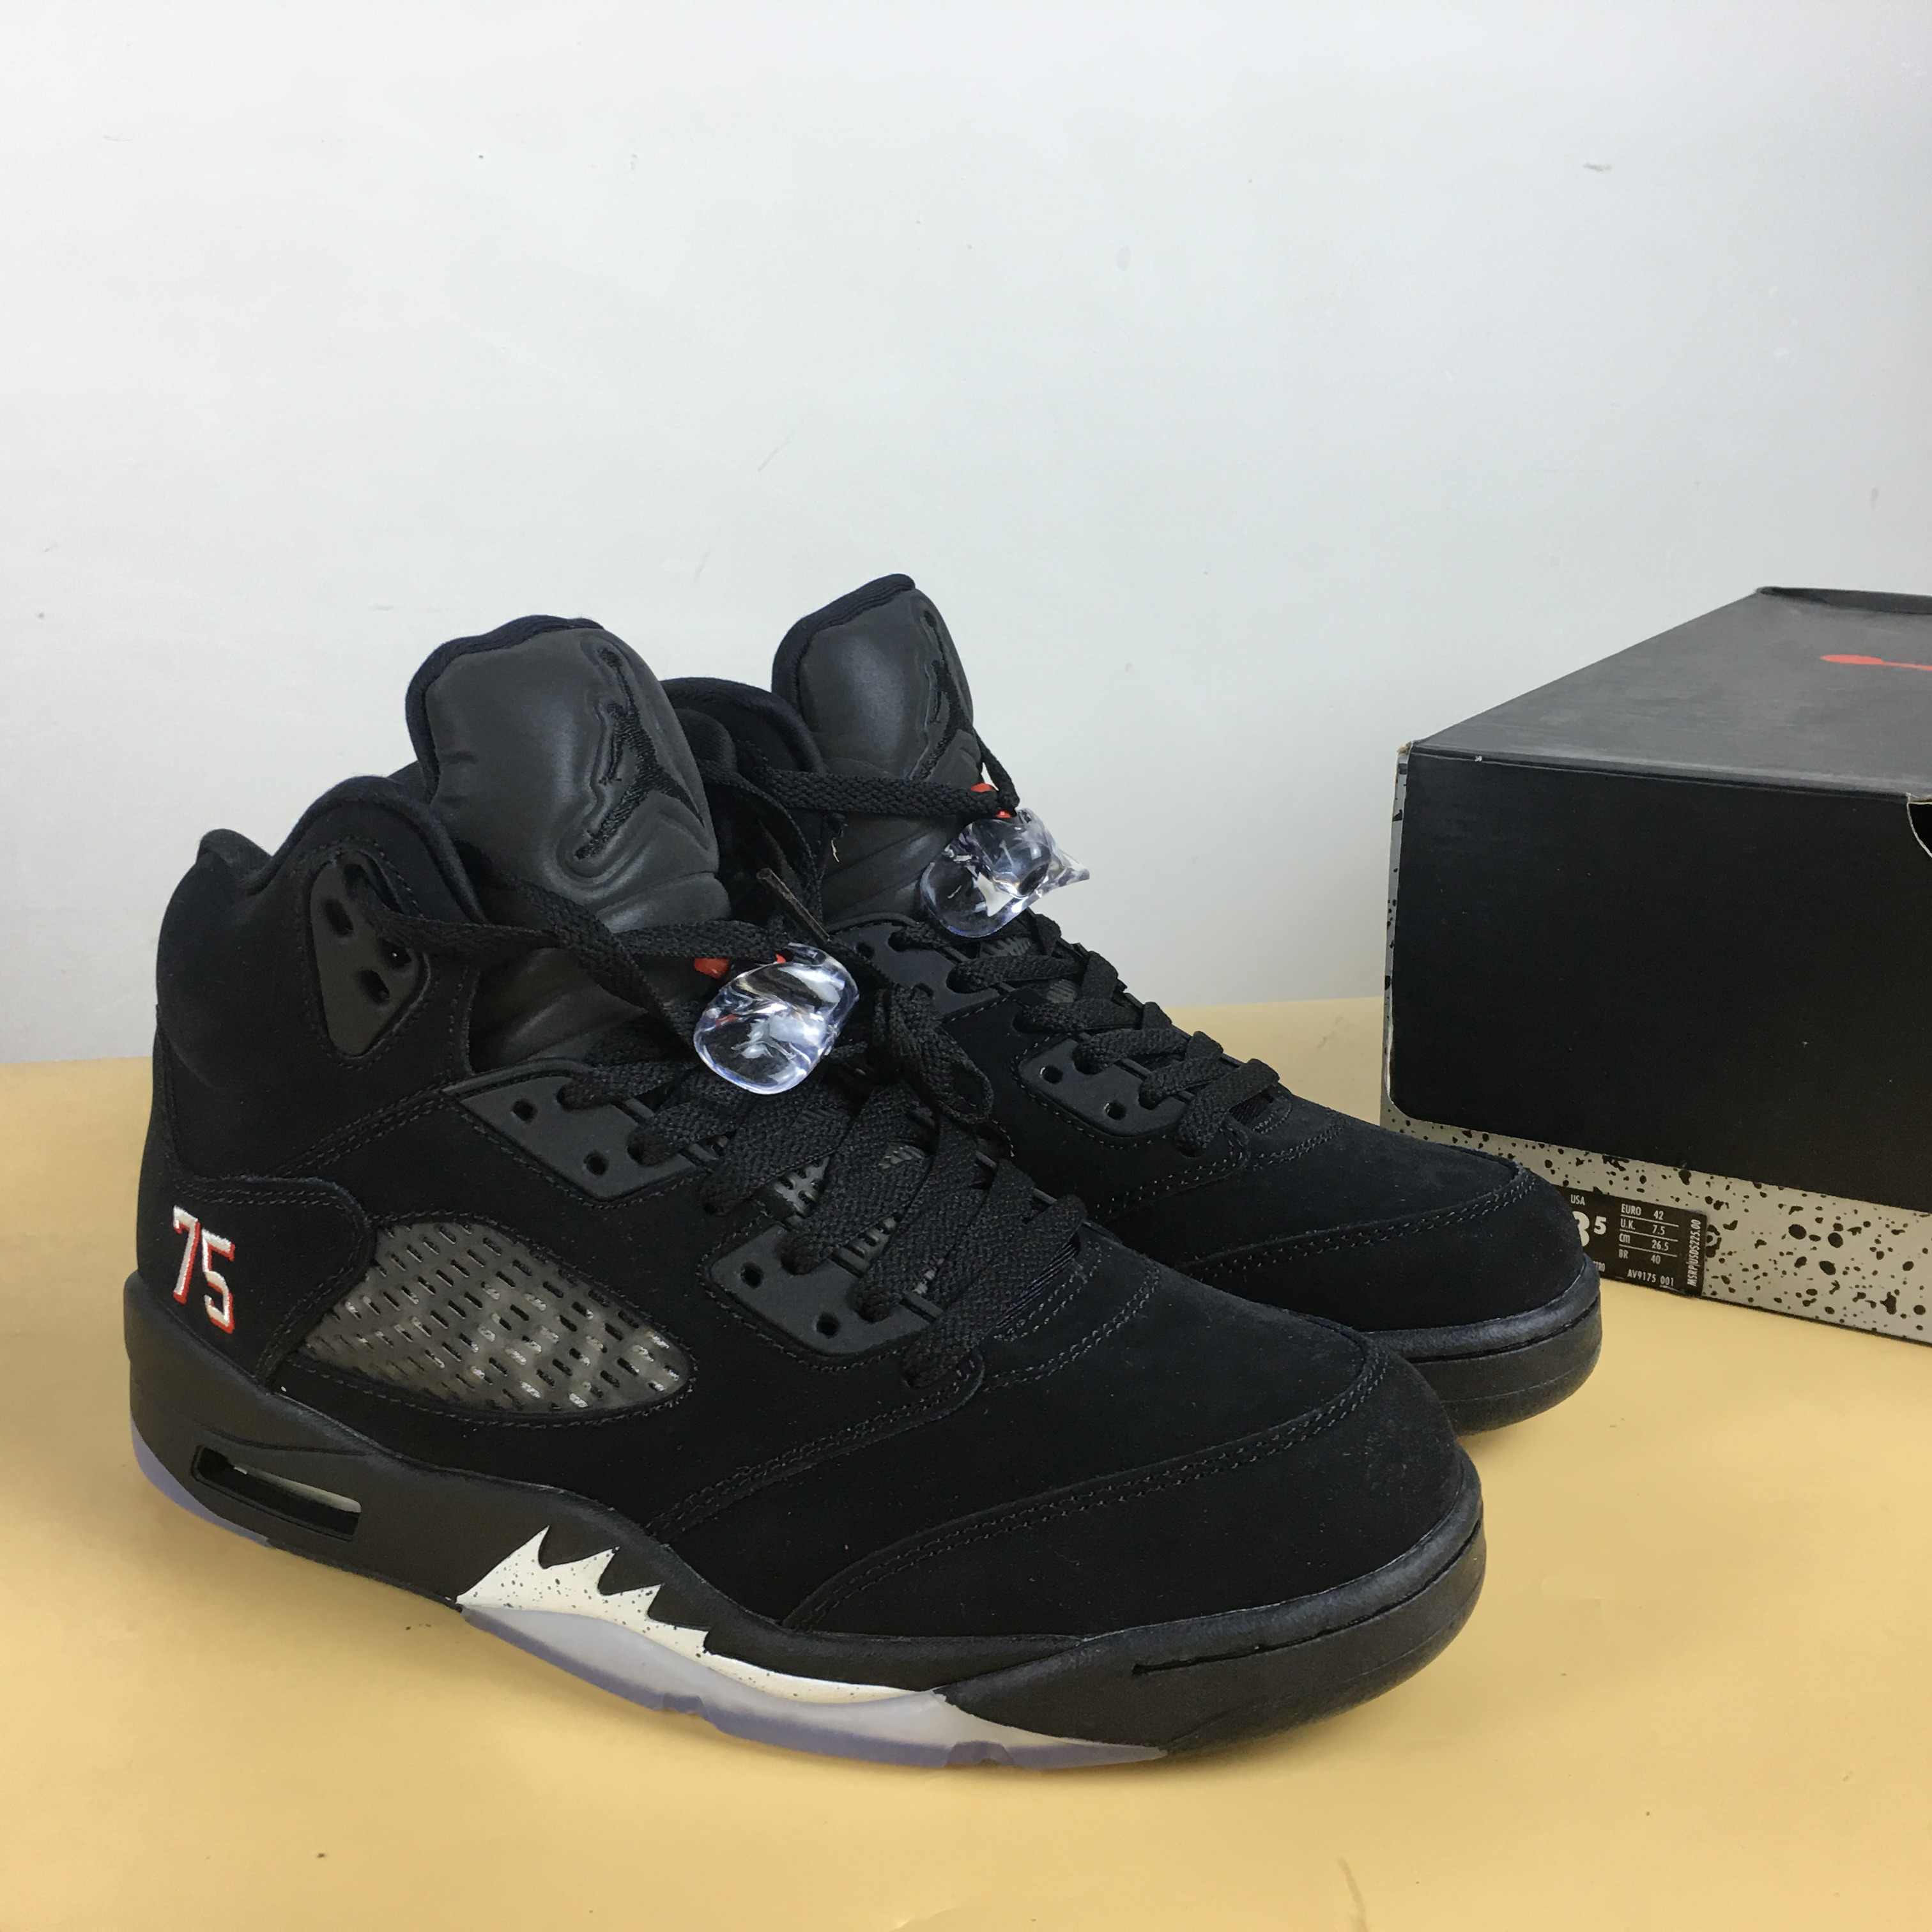 PSG x Air Jordan 5 Cool Black with Number 75 Shoes